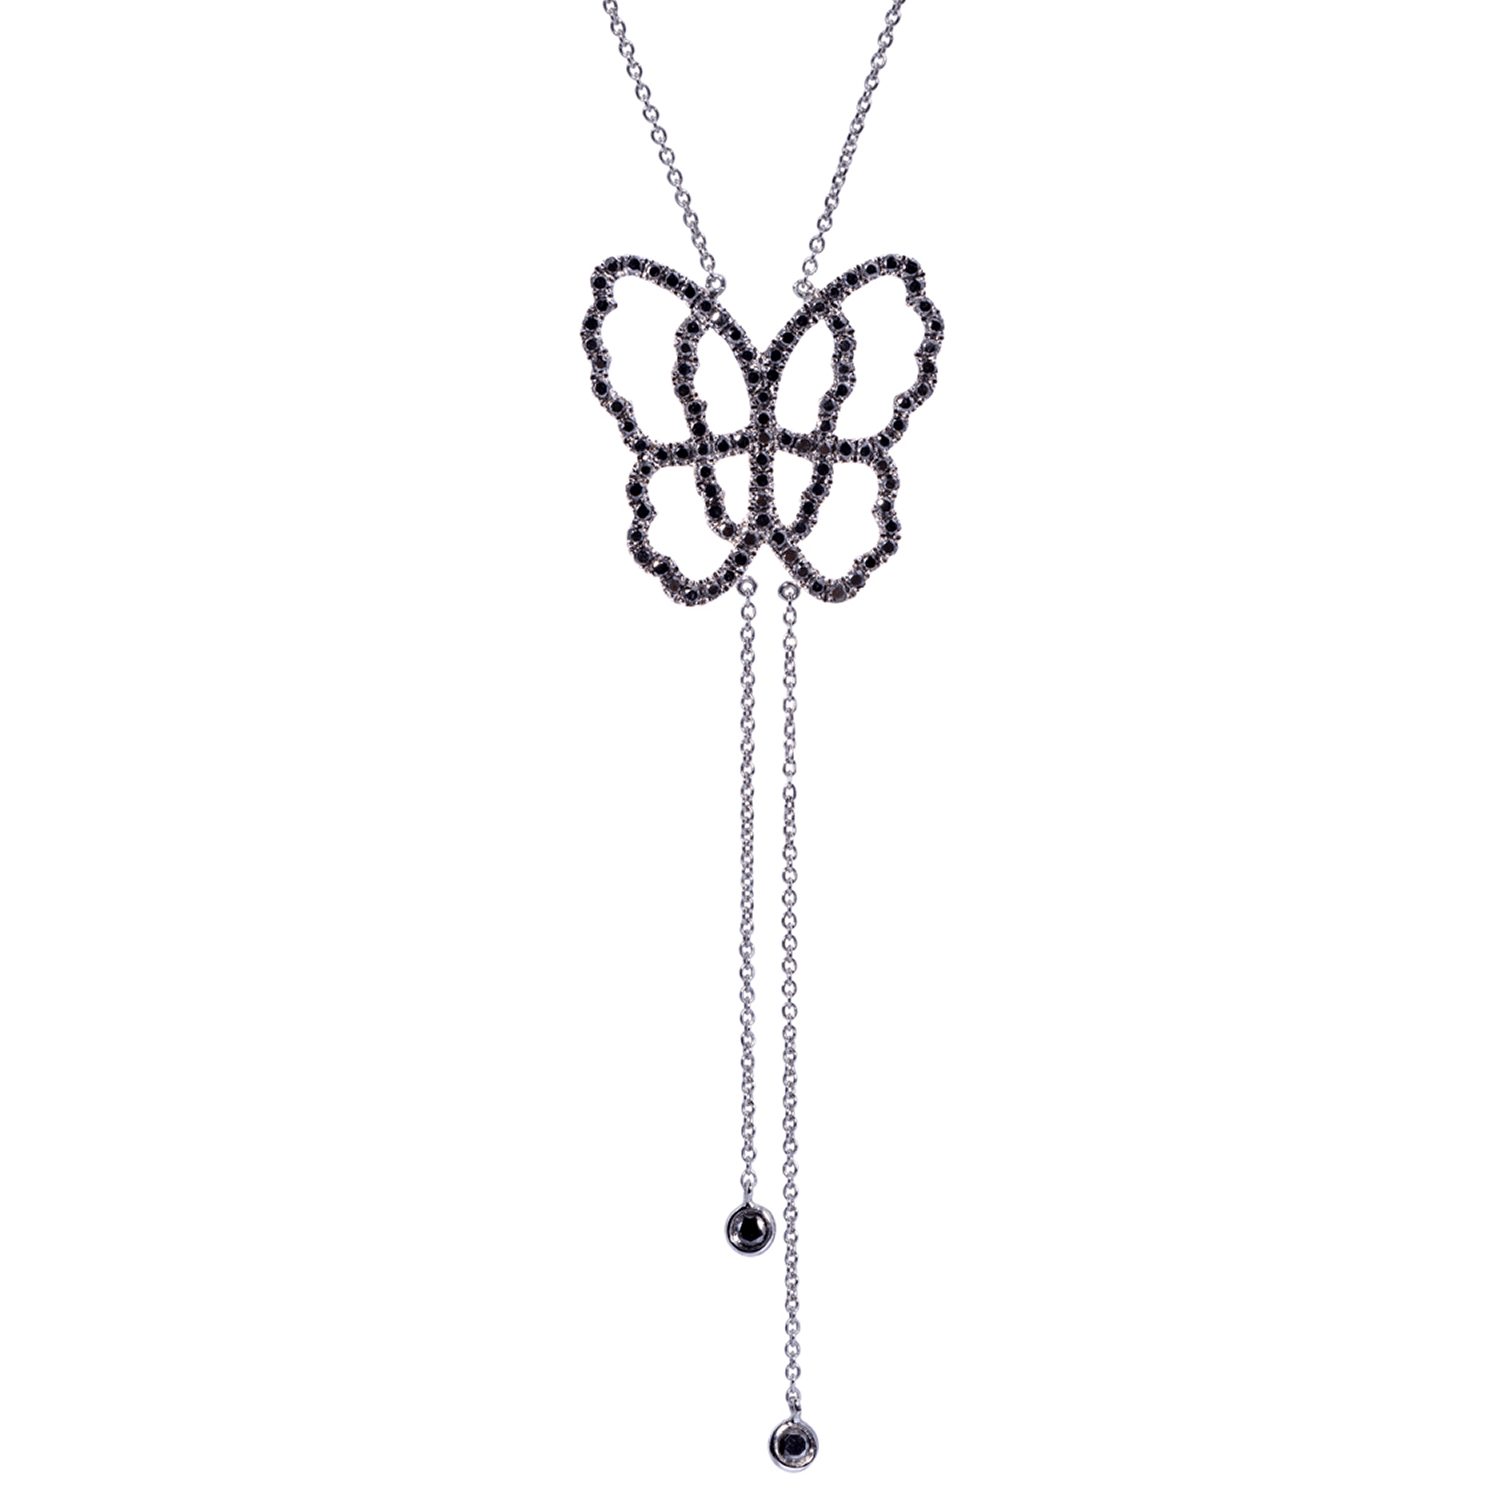 Live Today - Collier Or Gris 18k Serti de Diamants Noirs